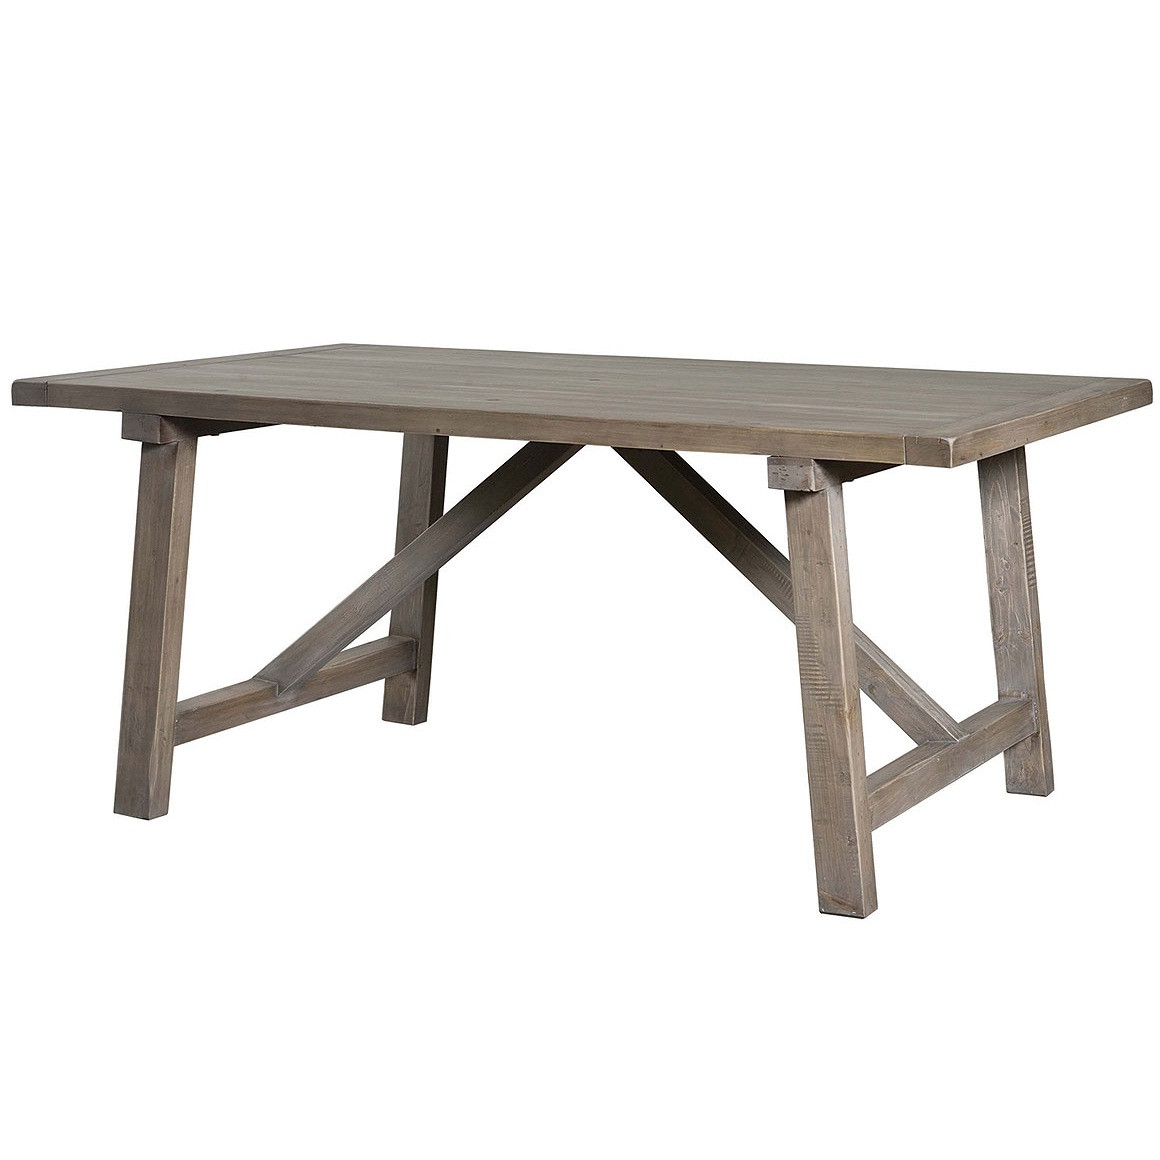 "Farmhouse Dining Table 78"" Reclaimed Wood FarmHouse Dining Tables"